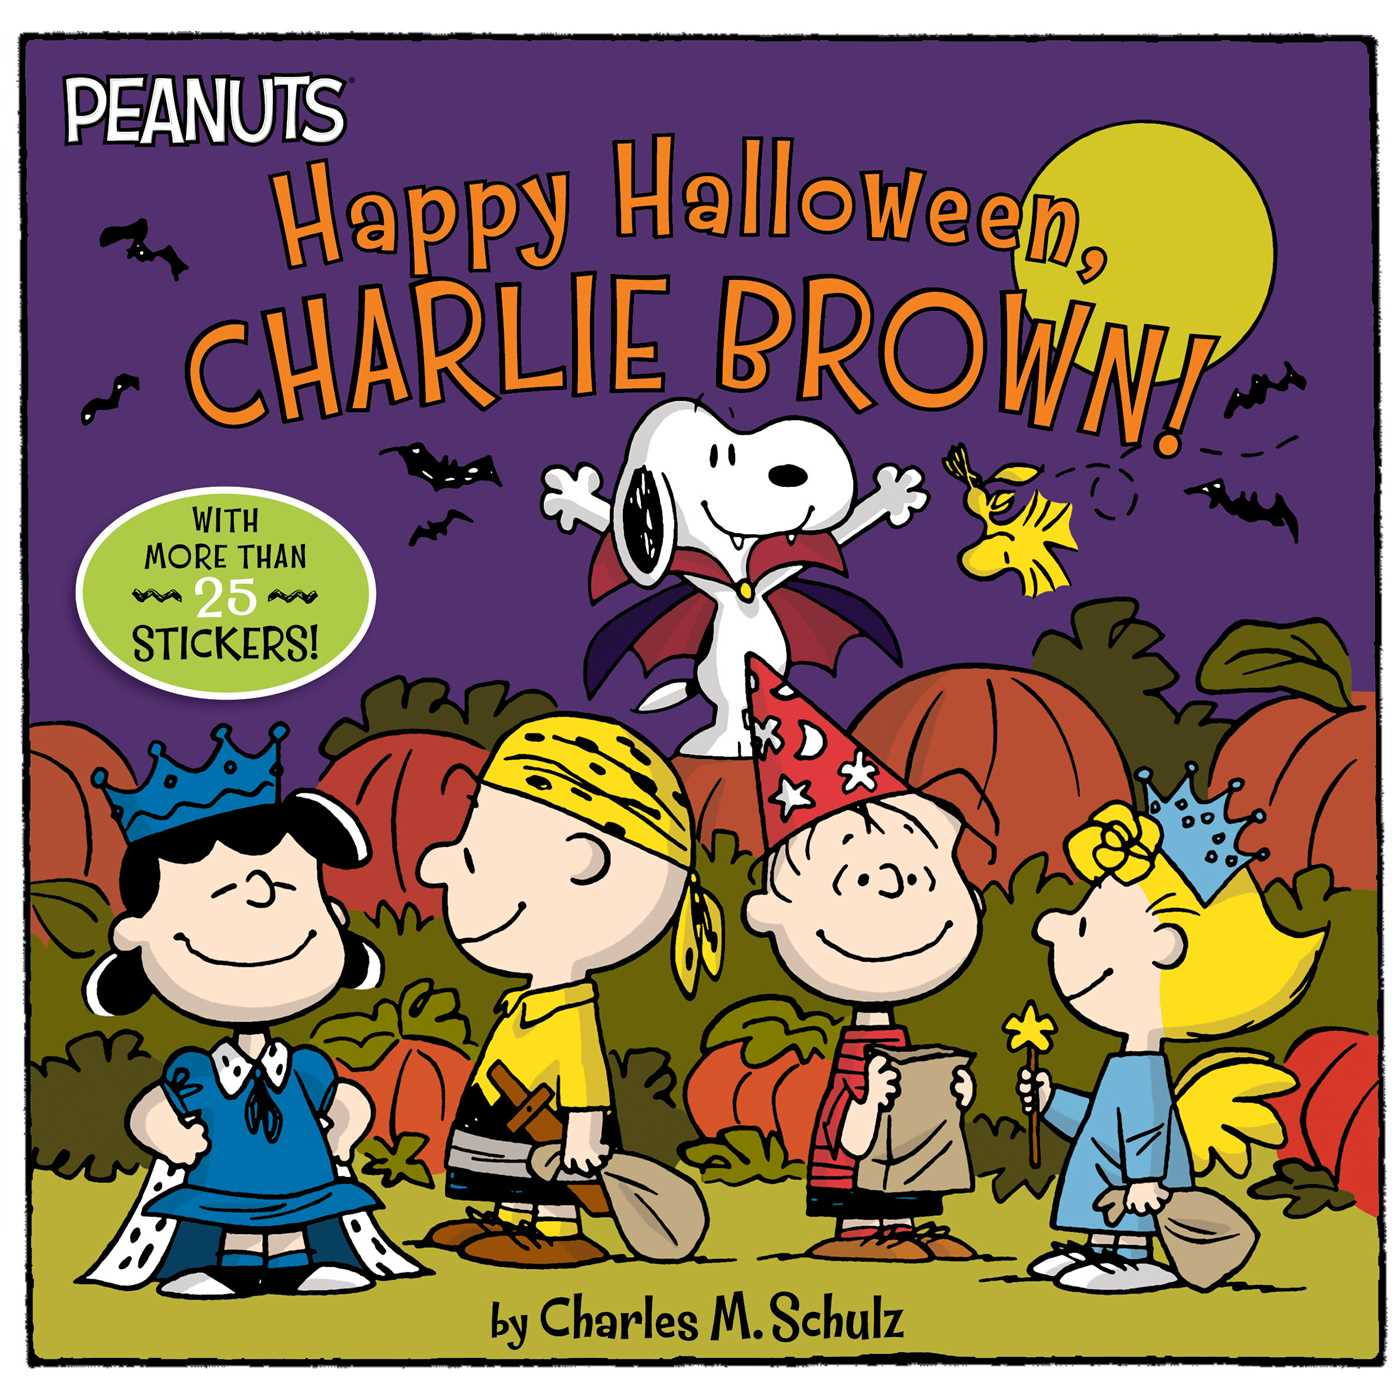 Happy halloween charlie brown book by charles m - Snoopy halloween images ...